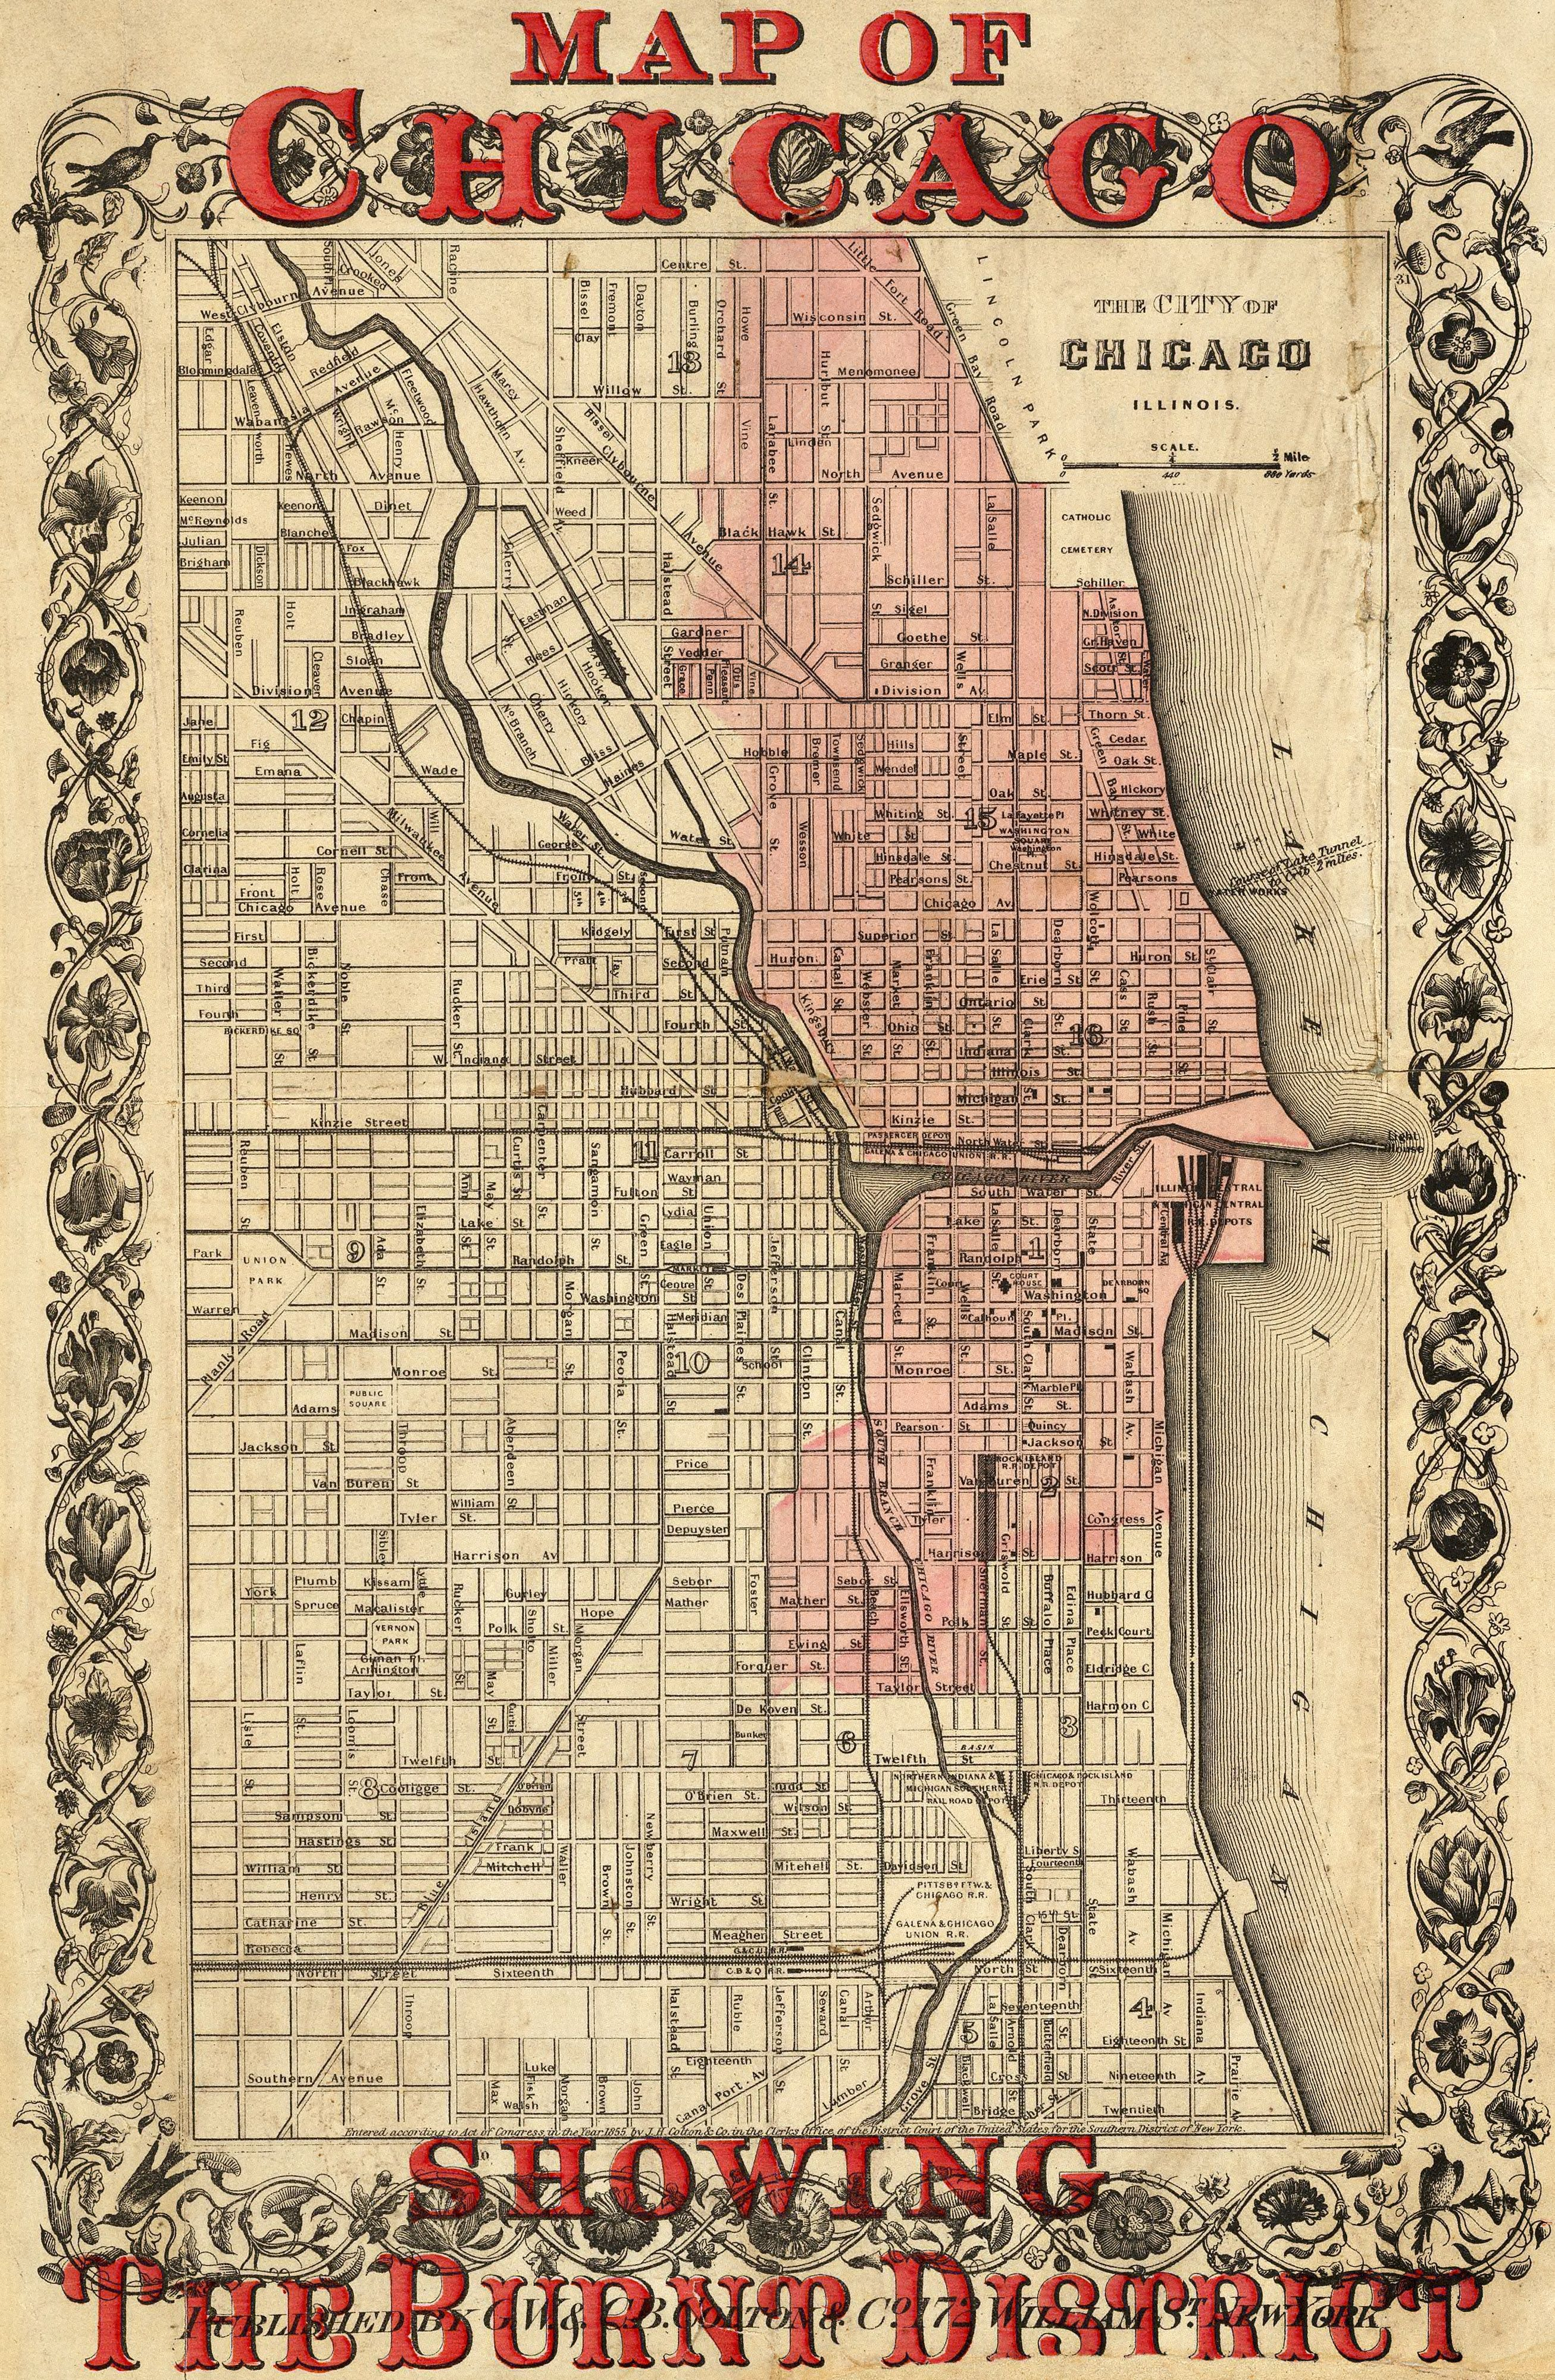 Great Chicago Fire 1871 Chicago Map Chicago History Chicago Fire